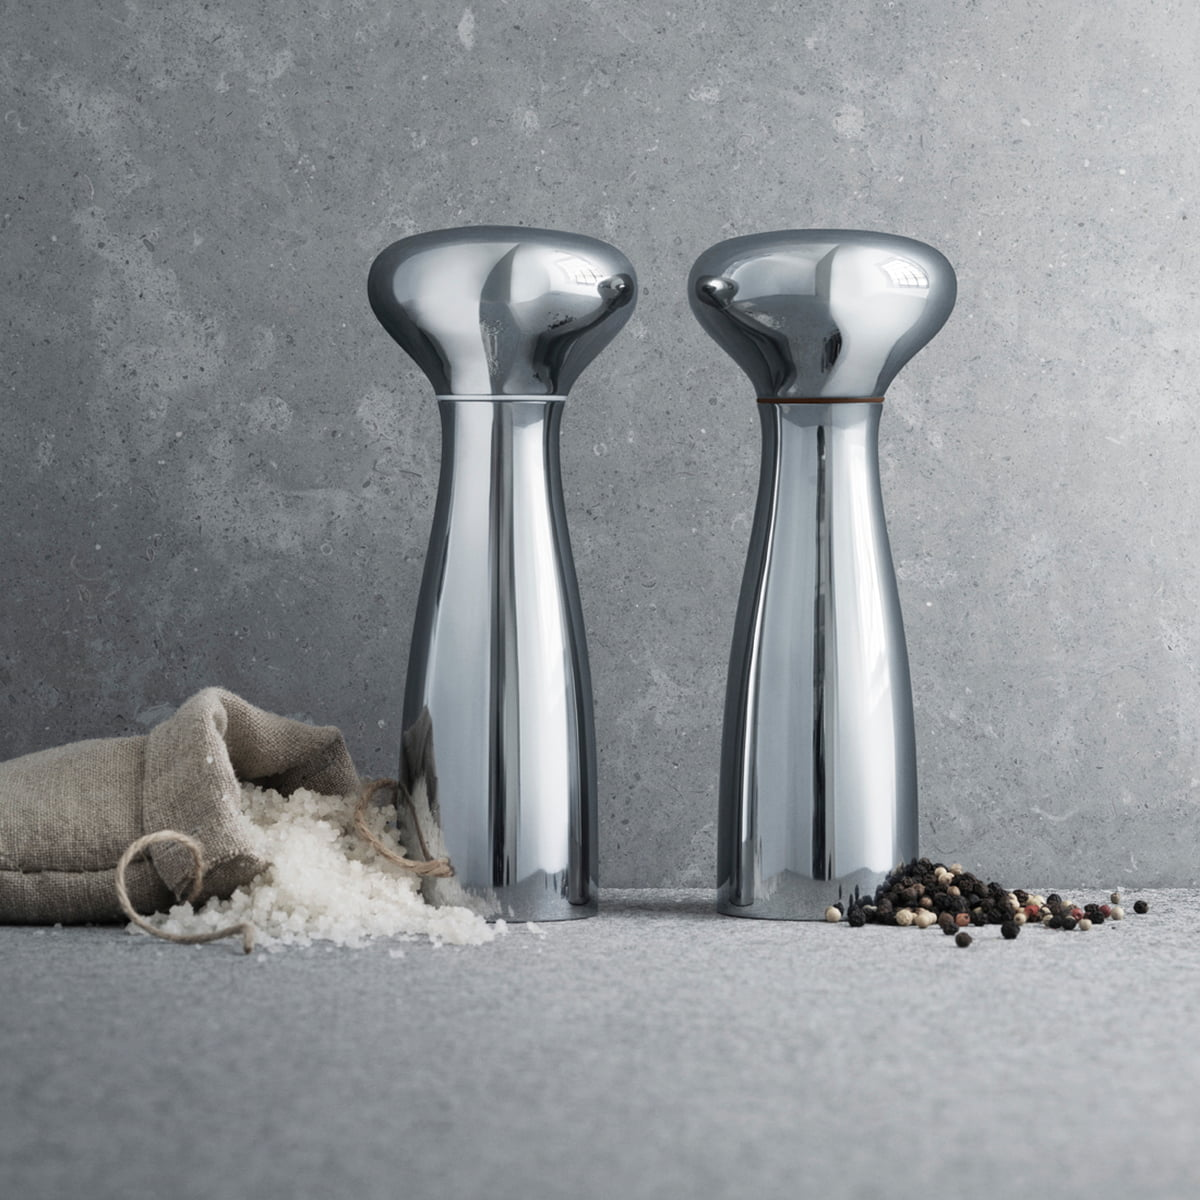 georg jensen alfredo salt and pepper grinders. Black Bedroom Furniture Sets. Home Design Ideas